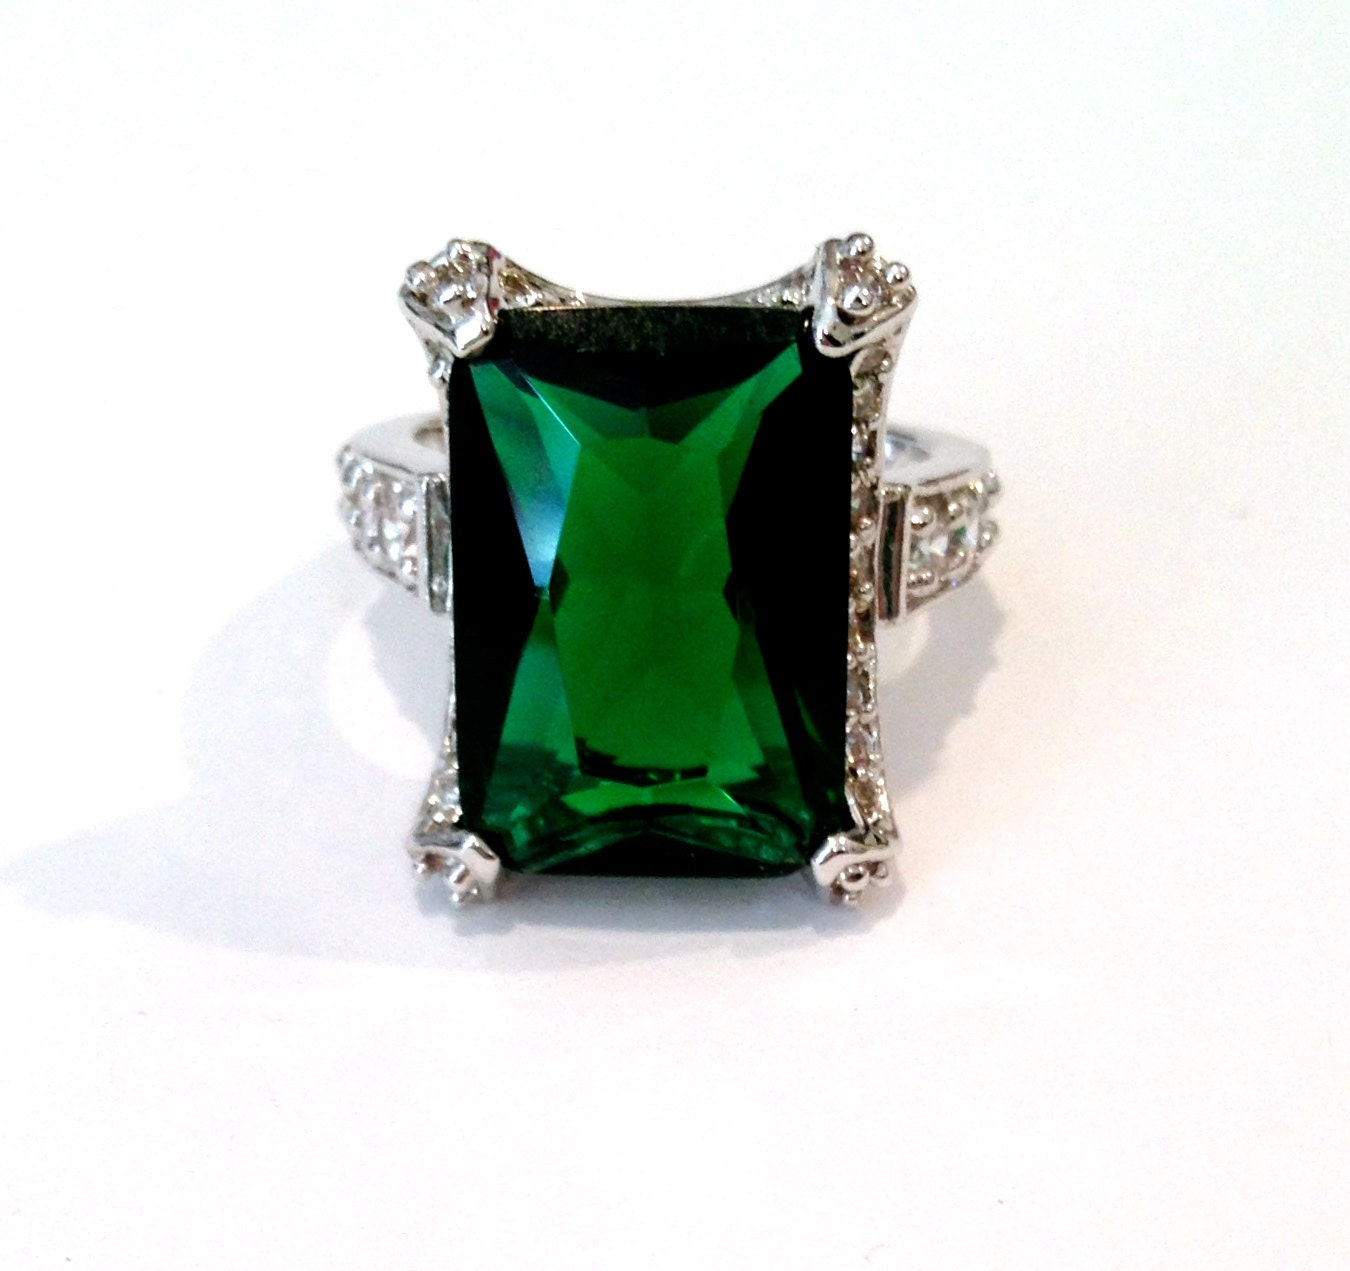 vintage emerald and pave estate jewelry ring by